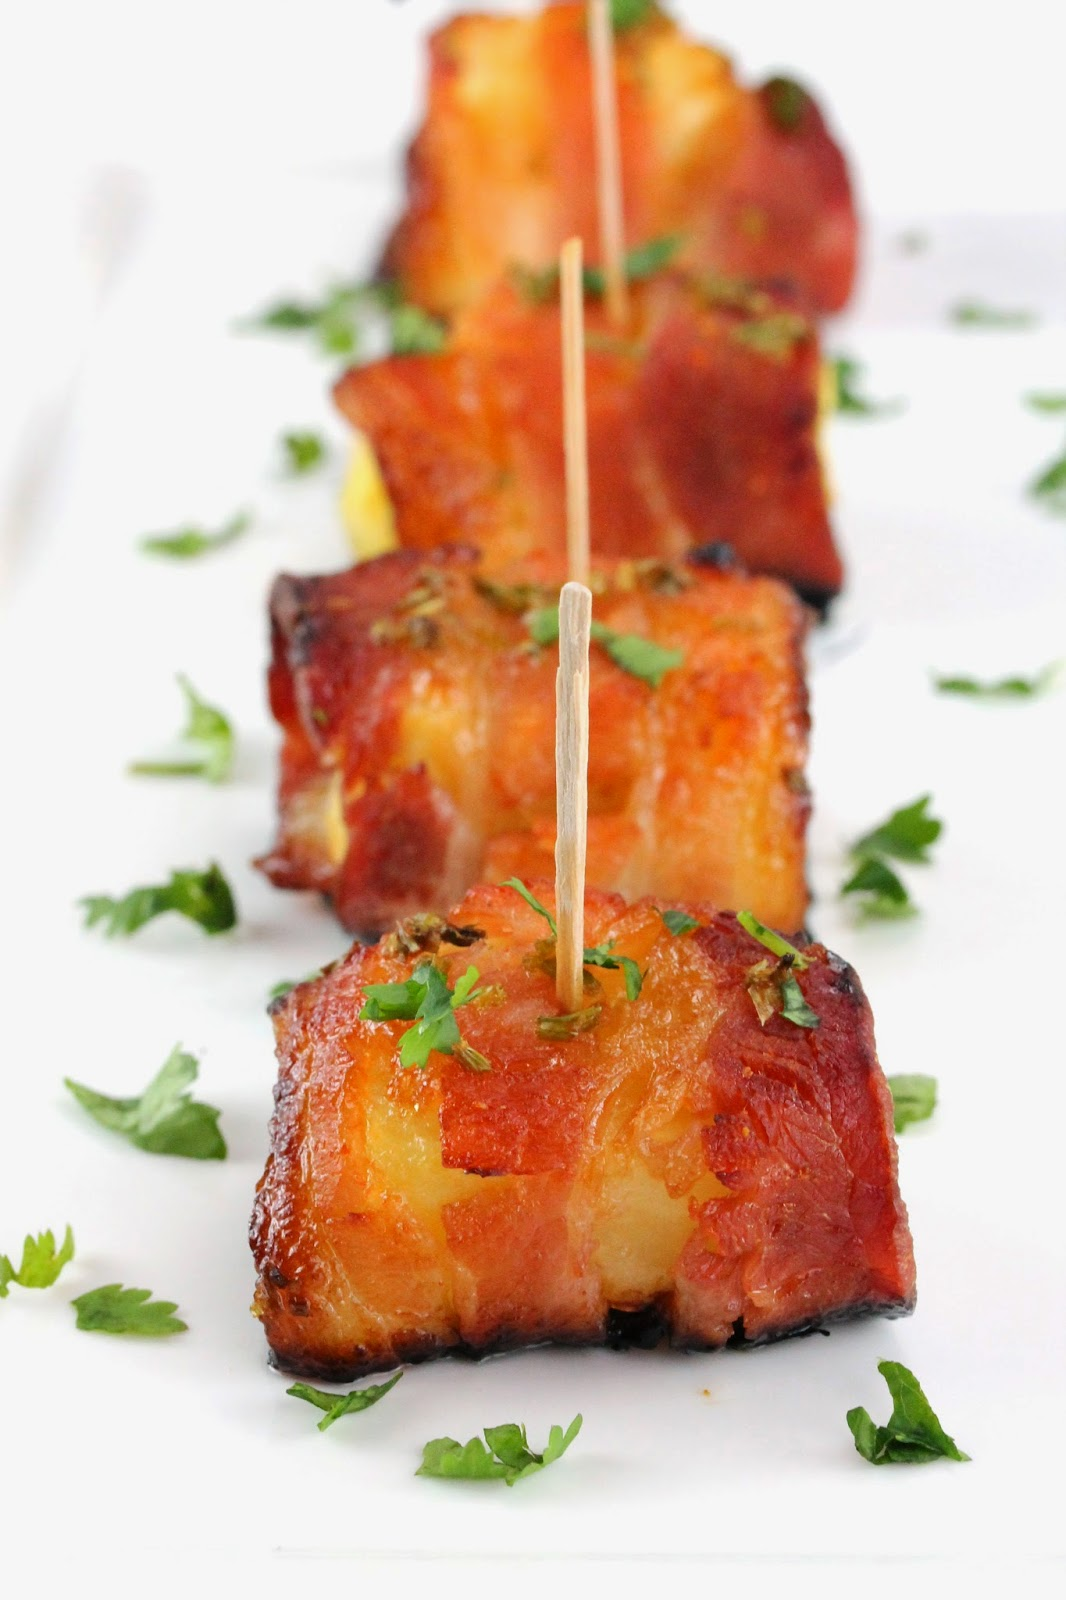 Bacon is wrapped around pineapple and glazed with a sweet and smokey sriracha-honey sauce in this spectacular appetizer.